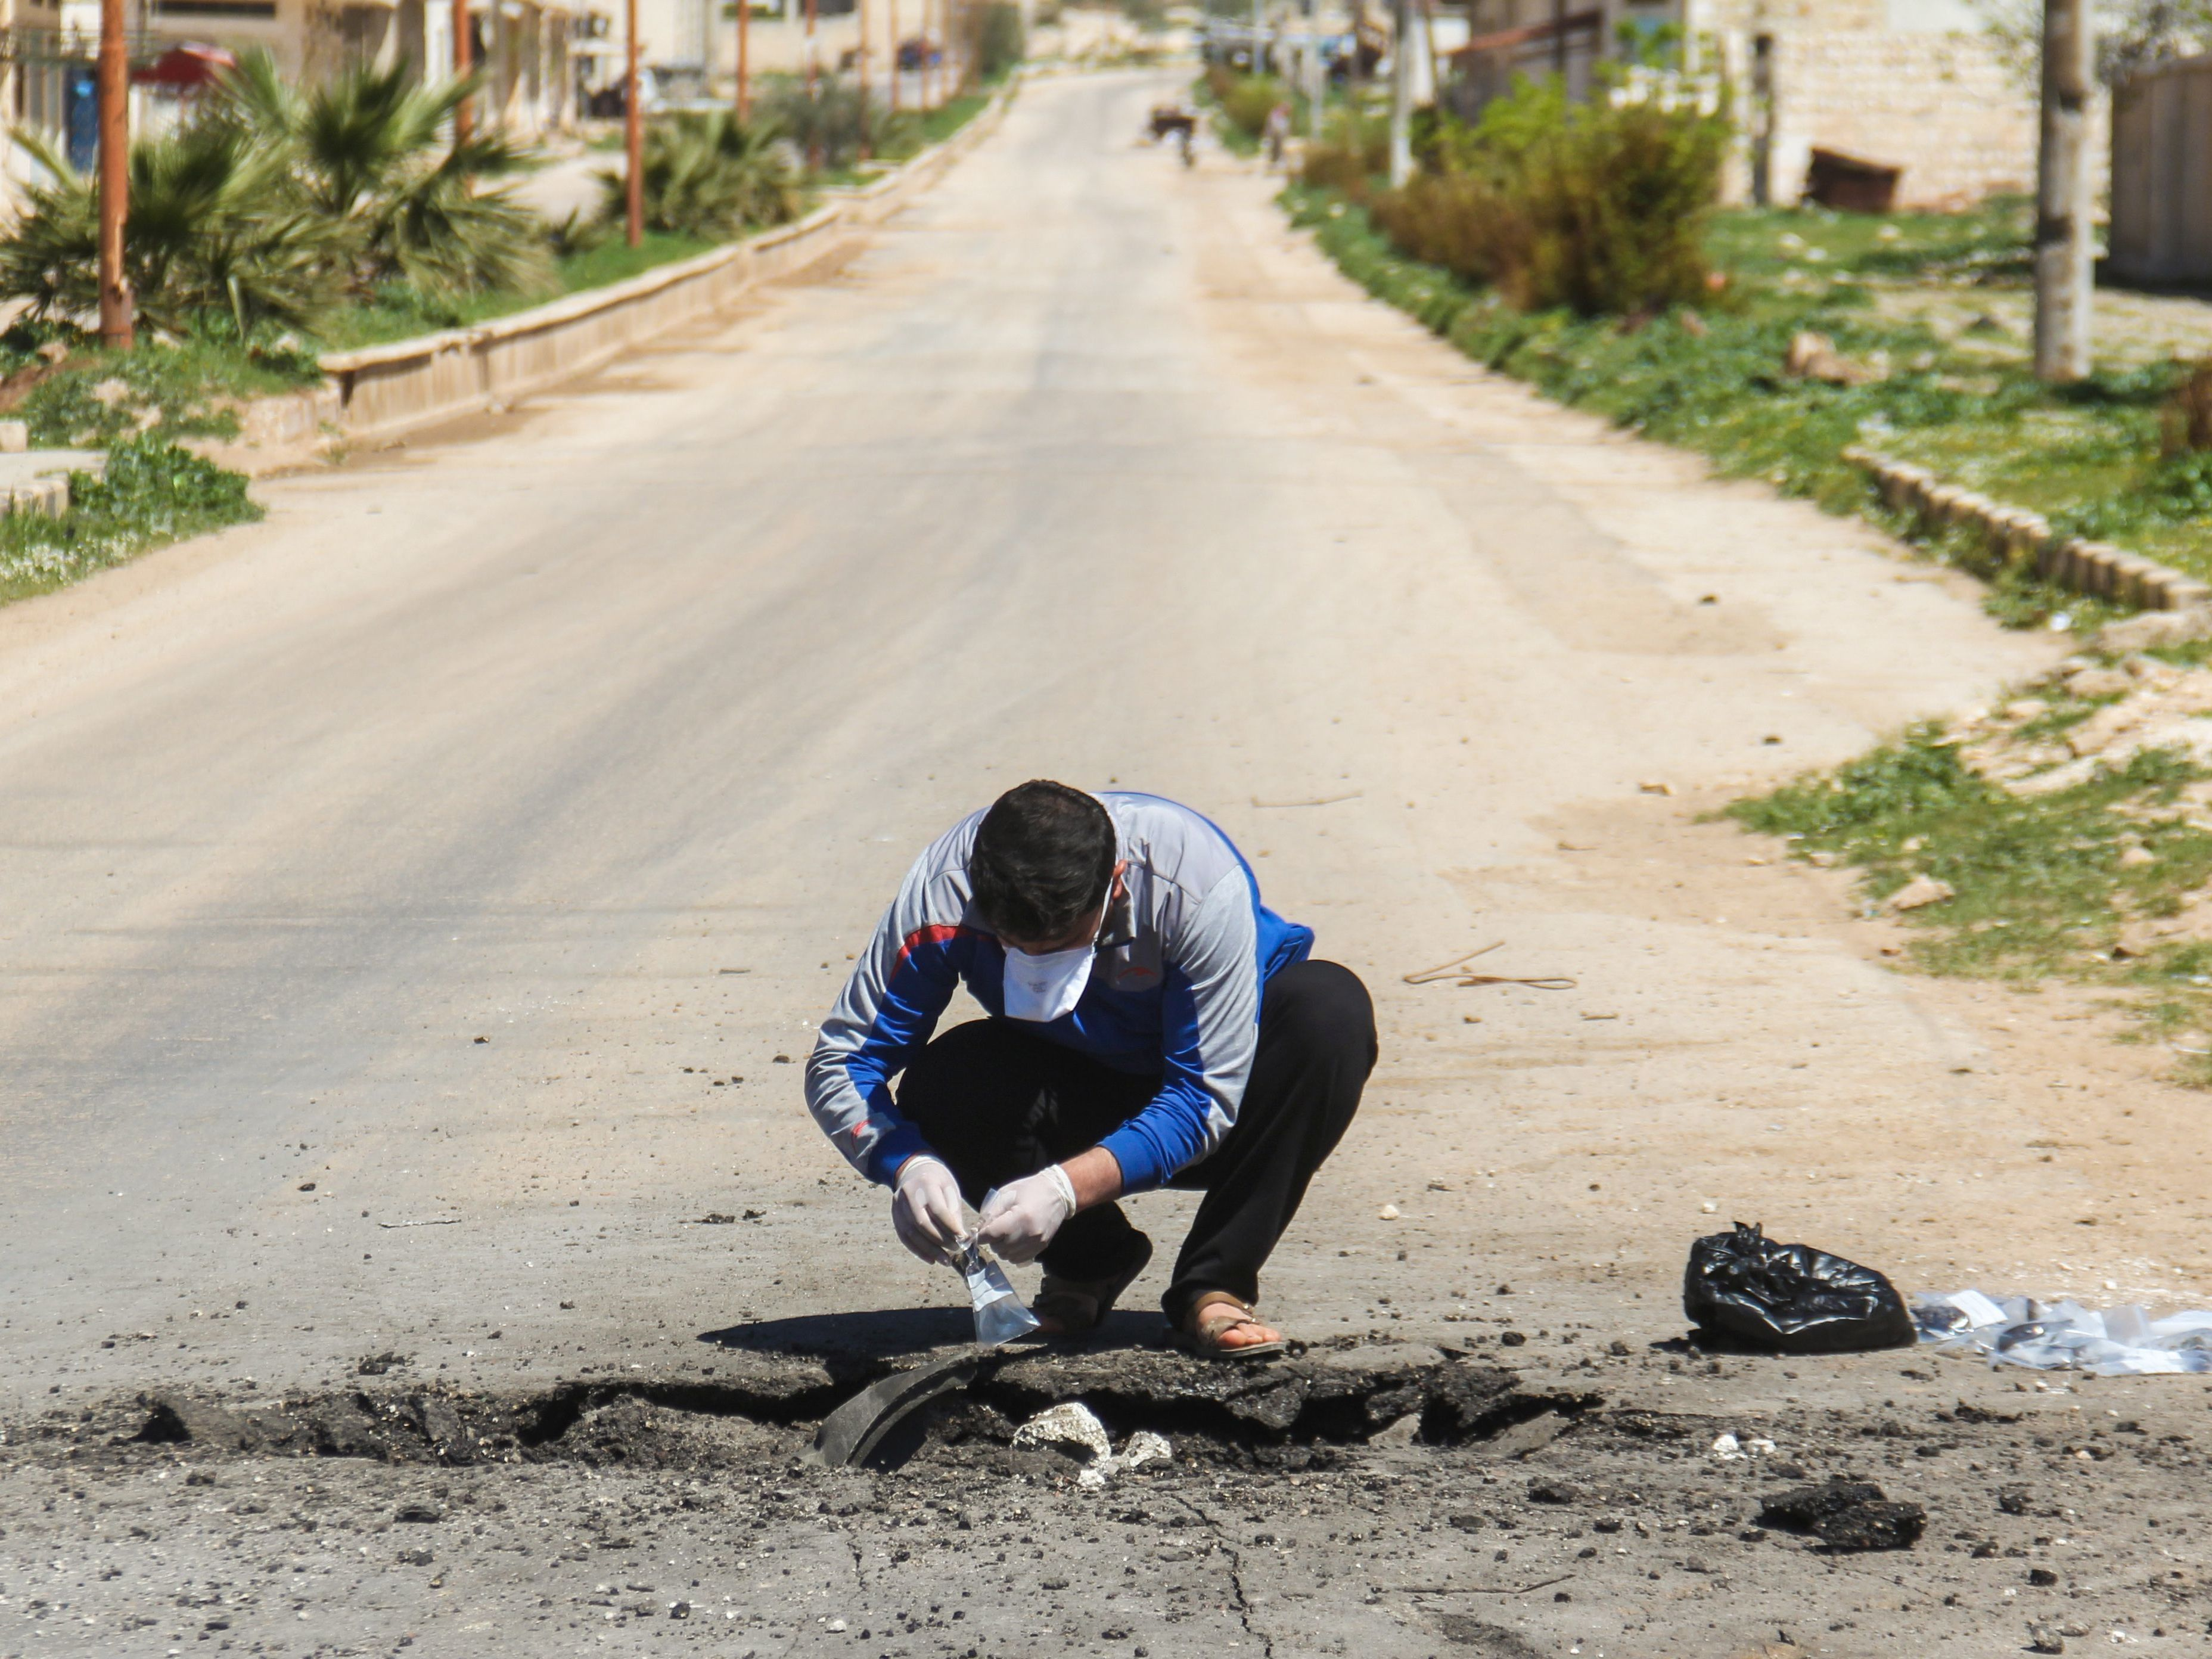 A man collects samples Wednesday from the site of a suspected toxic chemicals attack in Khan Shaykhun the day before. (Omar Haj Kadour/AFP/Getty Images)